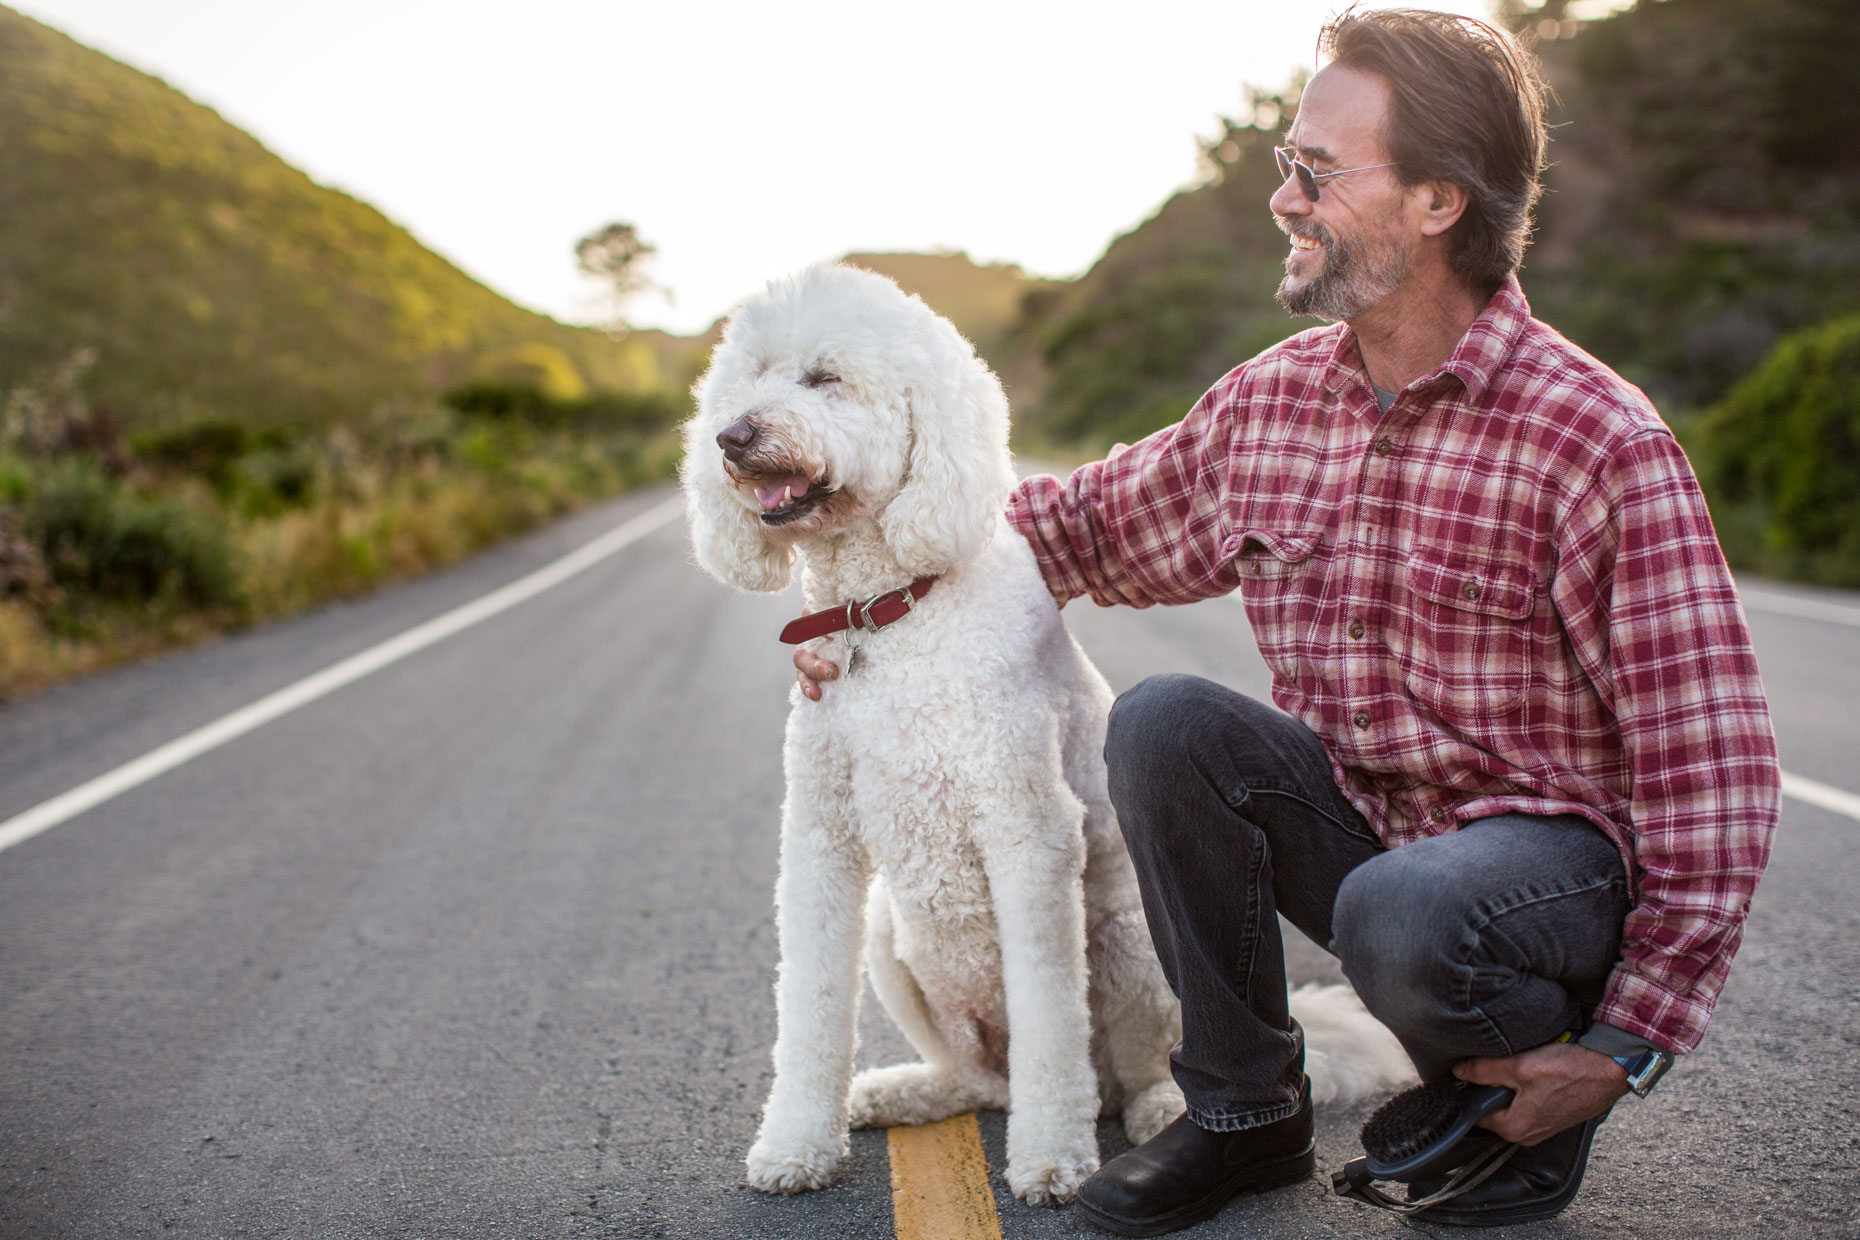 Commercial Photography | Man Laughing with Poodle by Mark Rogers